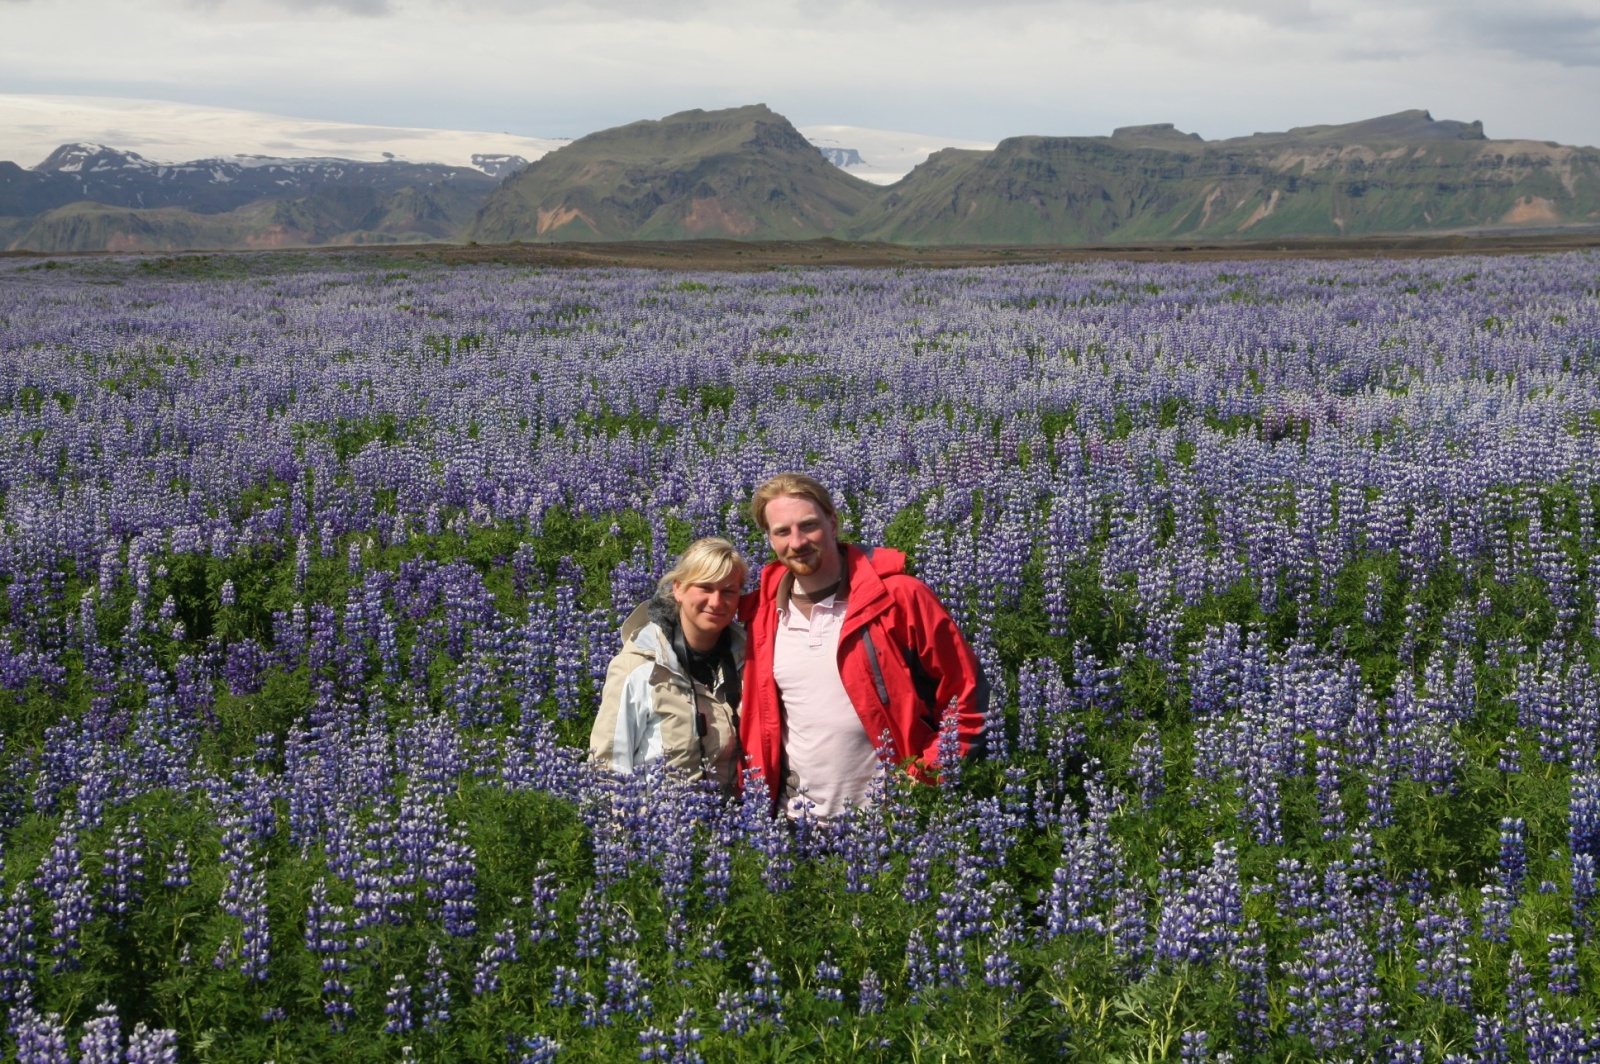 Lupin field - they are stronger than any Icelandic plants and therefore take up vast areas